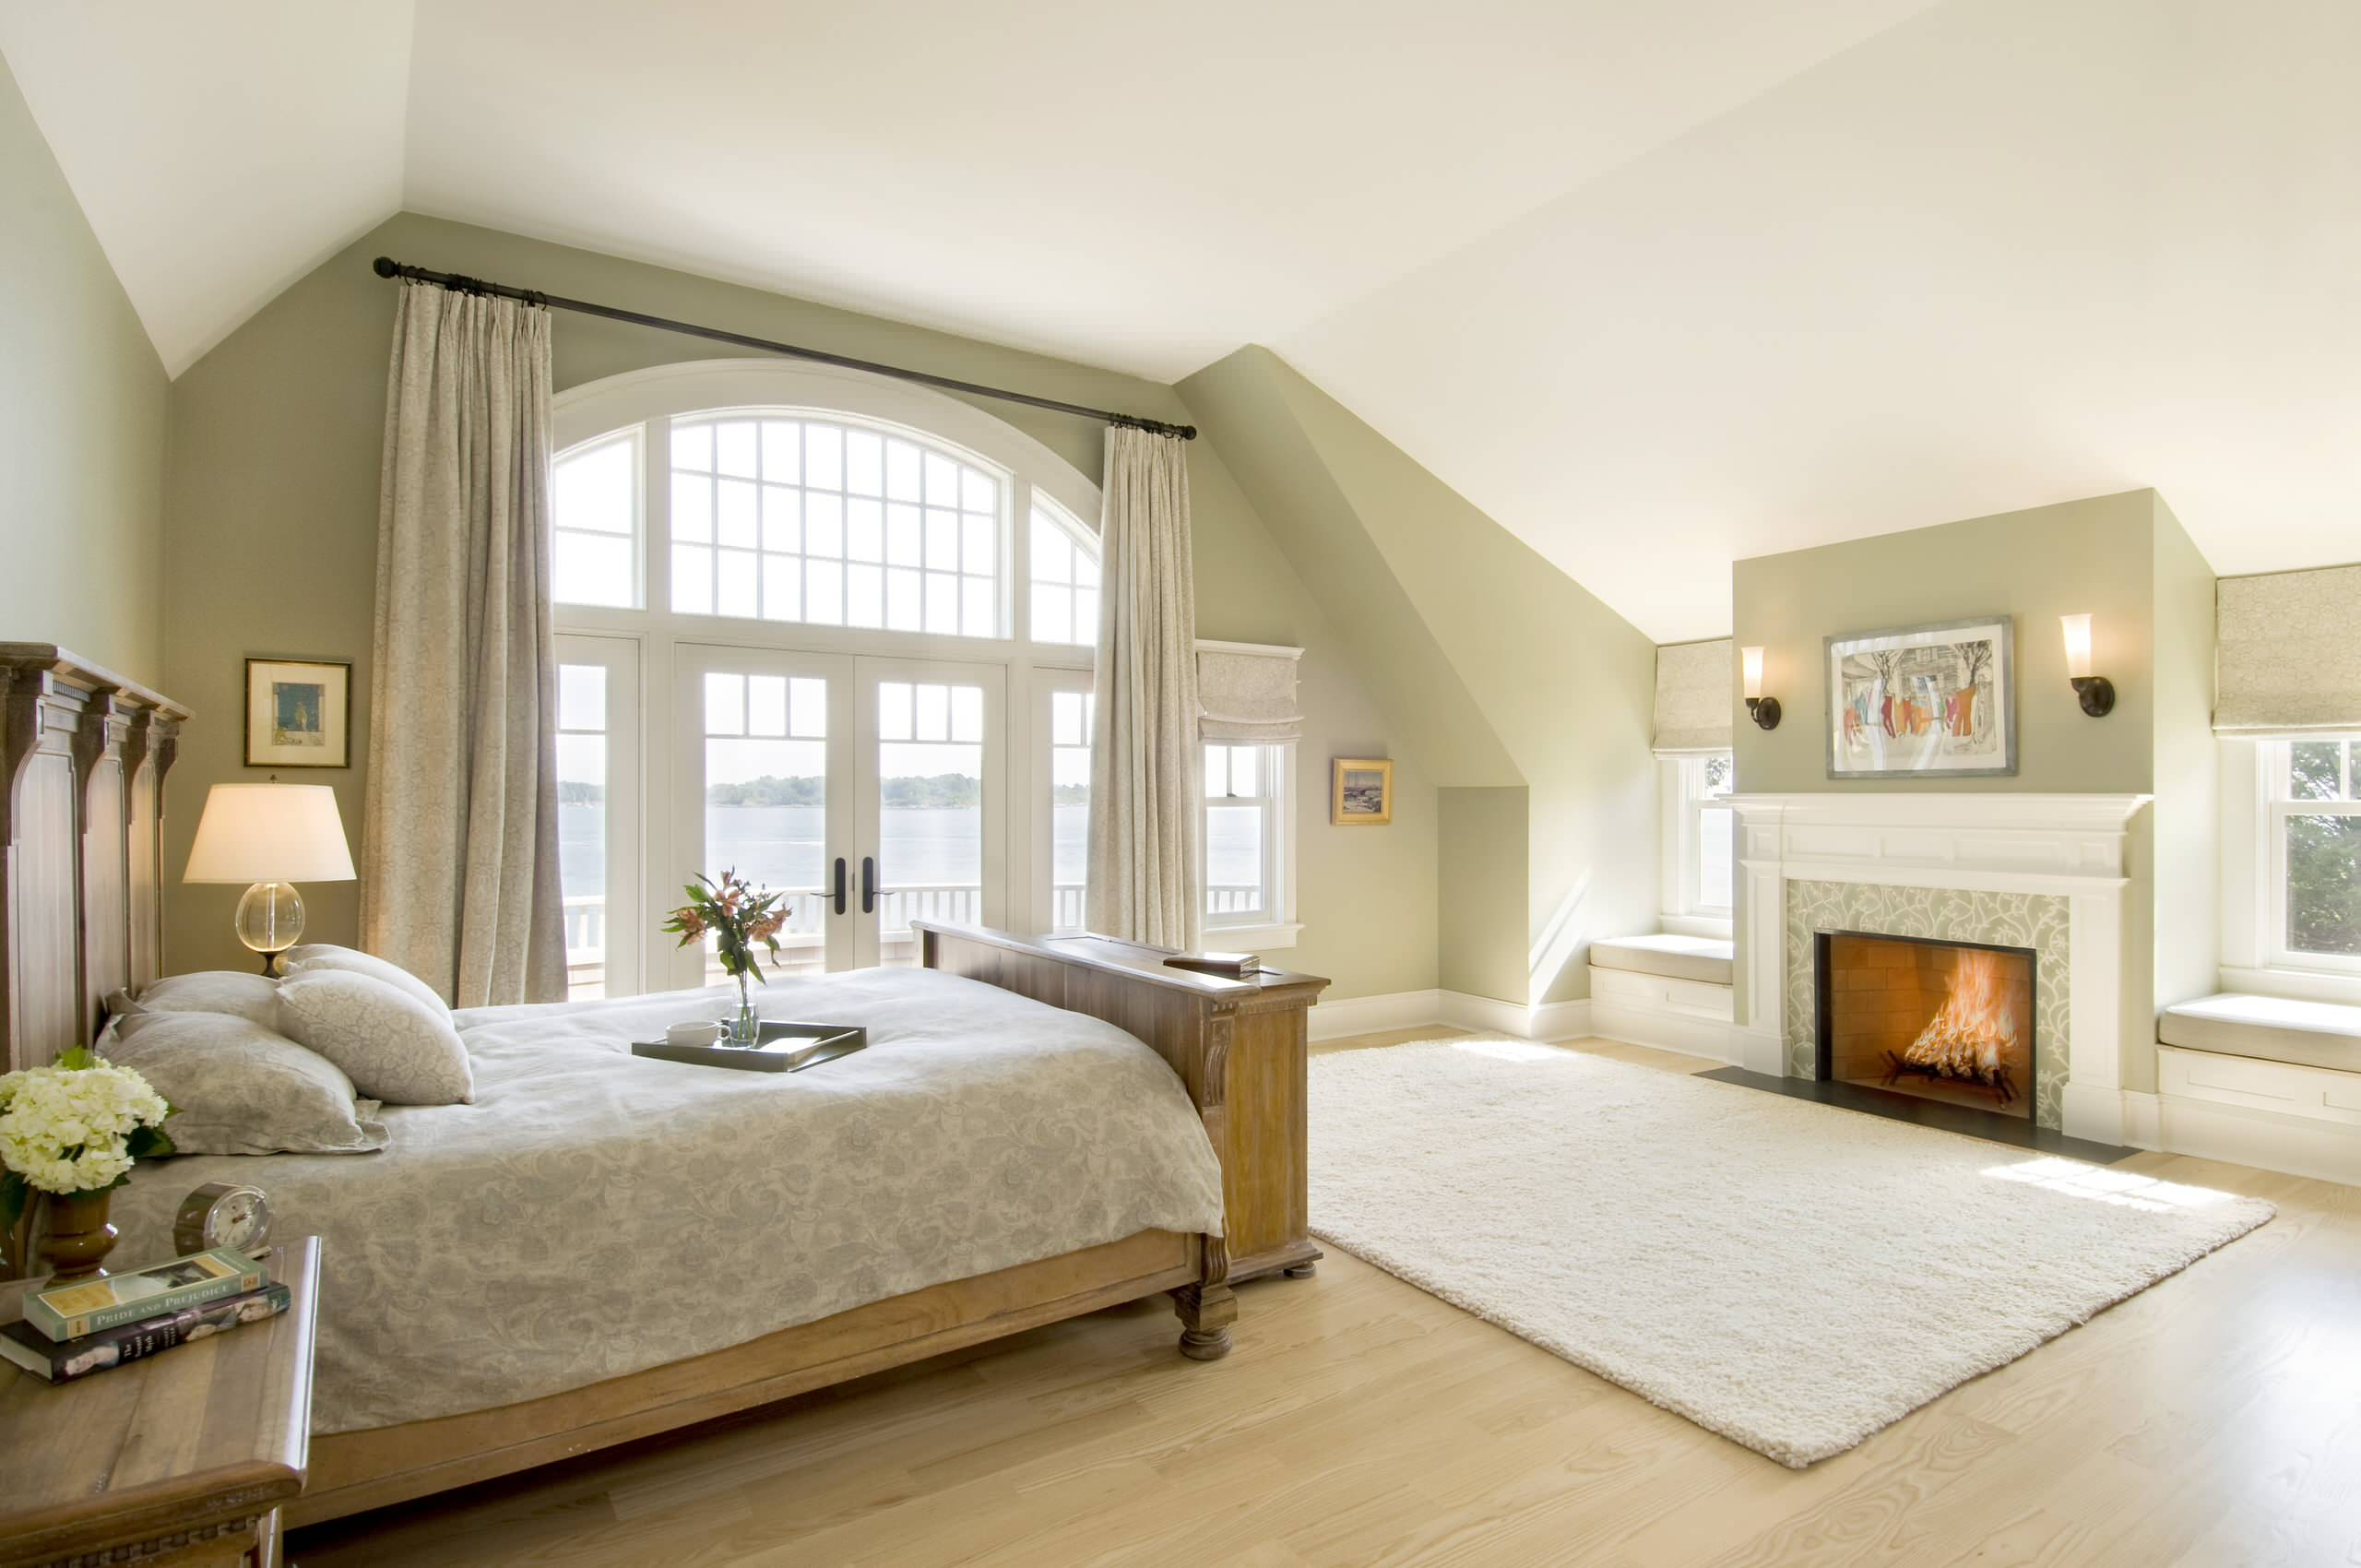 Master Bedroom Ideas With Fireplace architecture: master bedroom ideas with light wood flooring plus